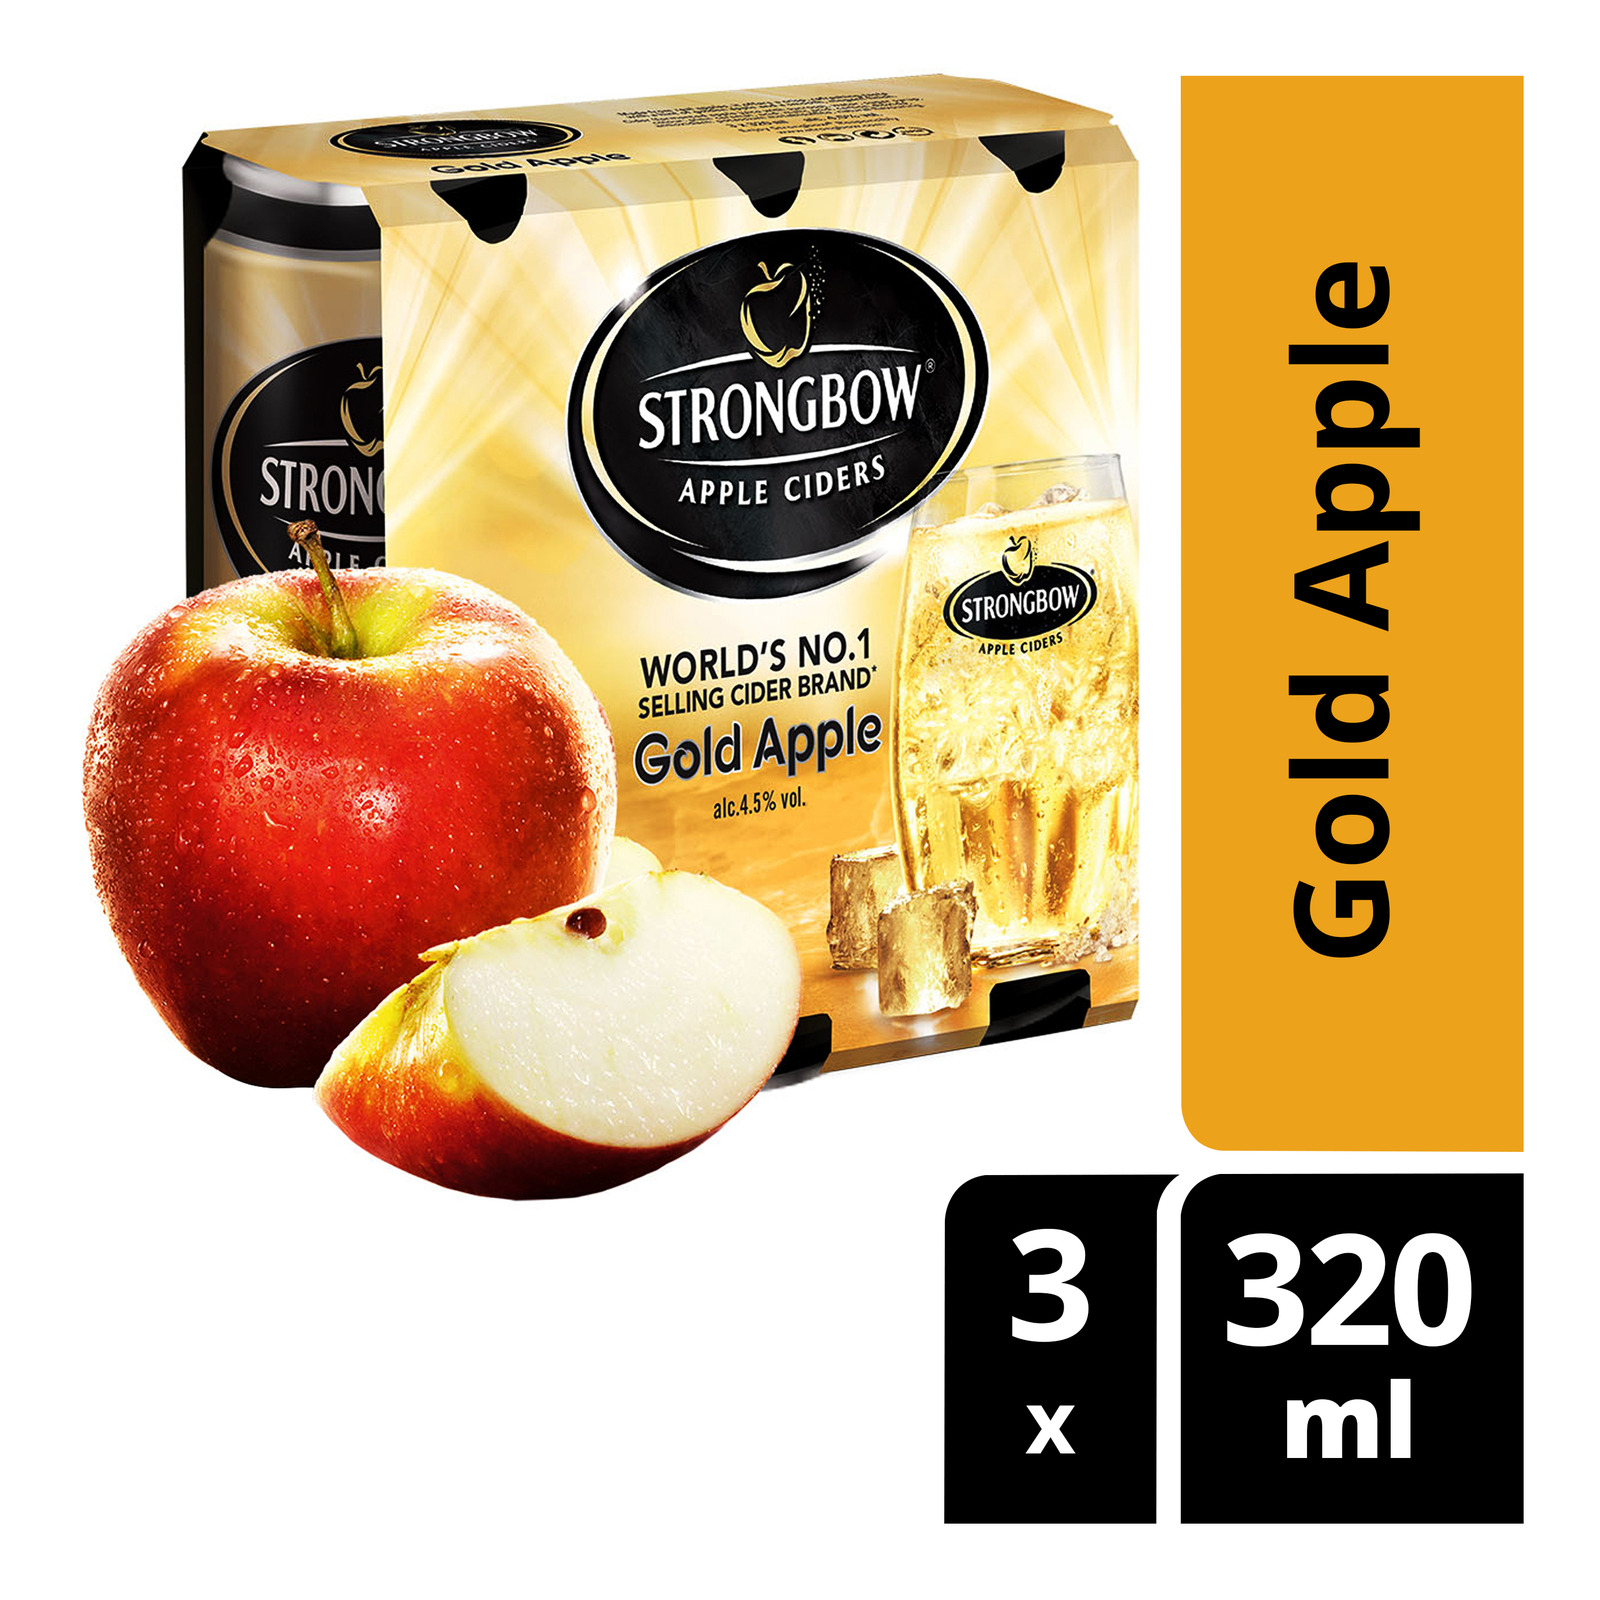 Strongbow Apple Can Cider - Gold Apple